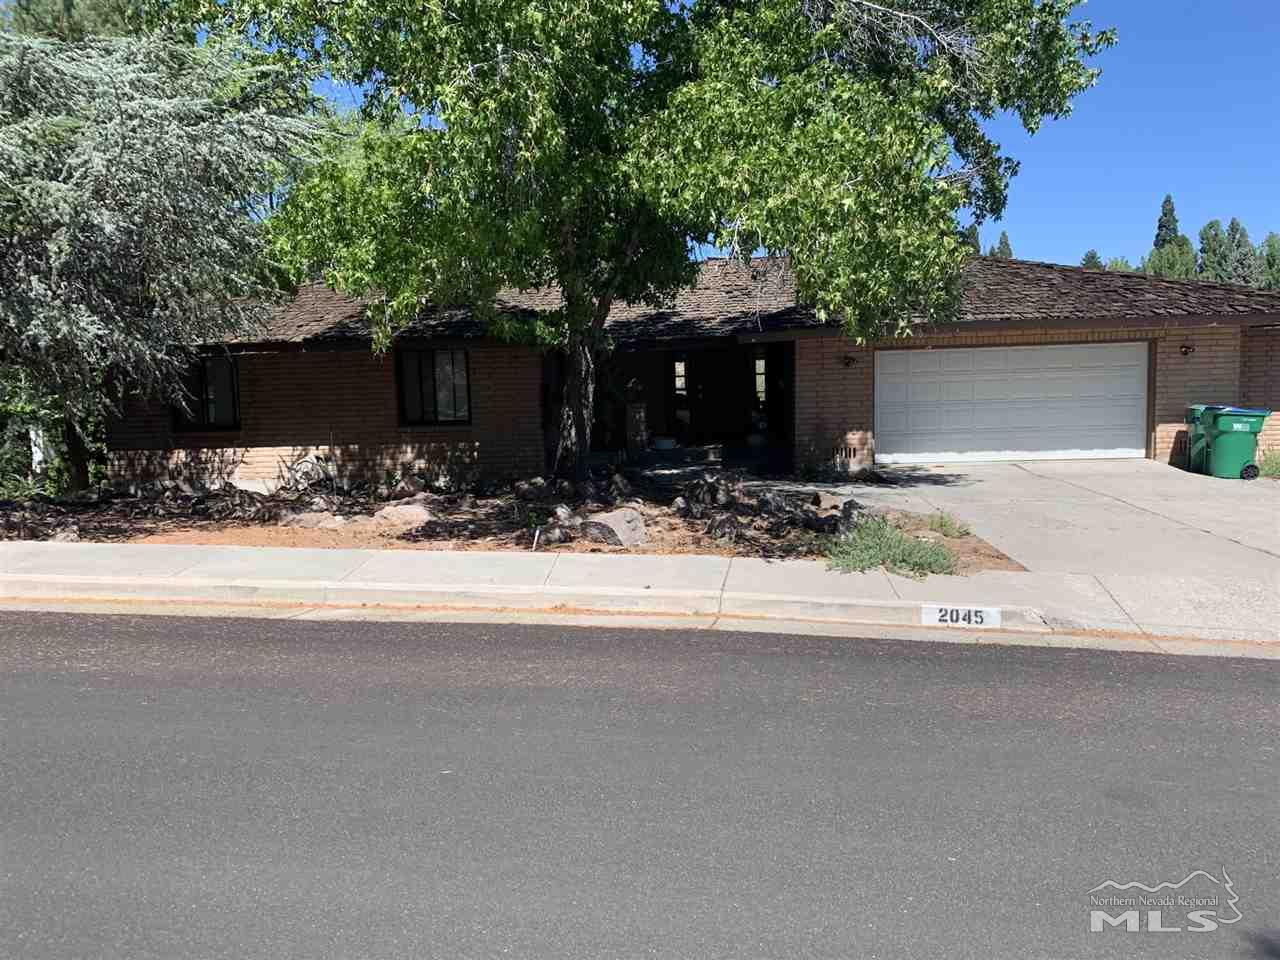 2045 Lakeridge Drive, Reno, Nevada 89509-5711, 5 Bedrooms Bedrooms, ,4 BathroomsBathrooms,Residential,For Sale,2045 Lakeridge Drive,1,200010984